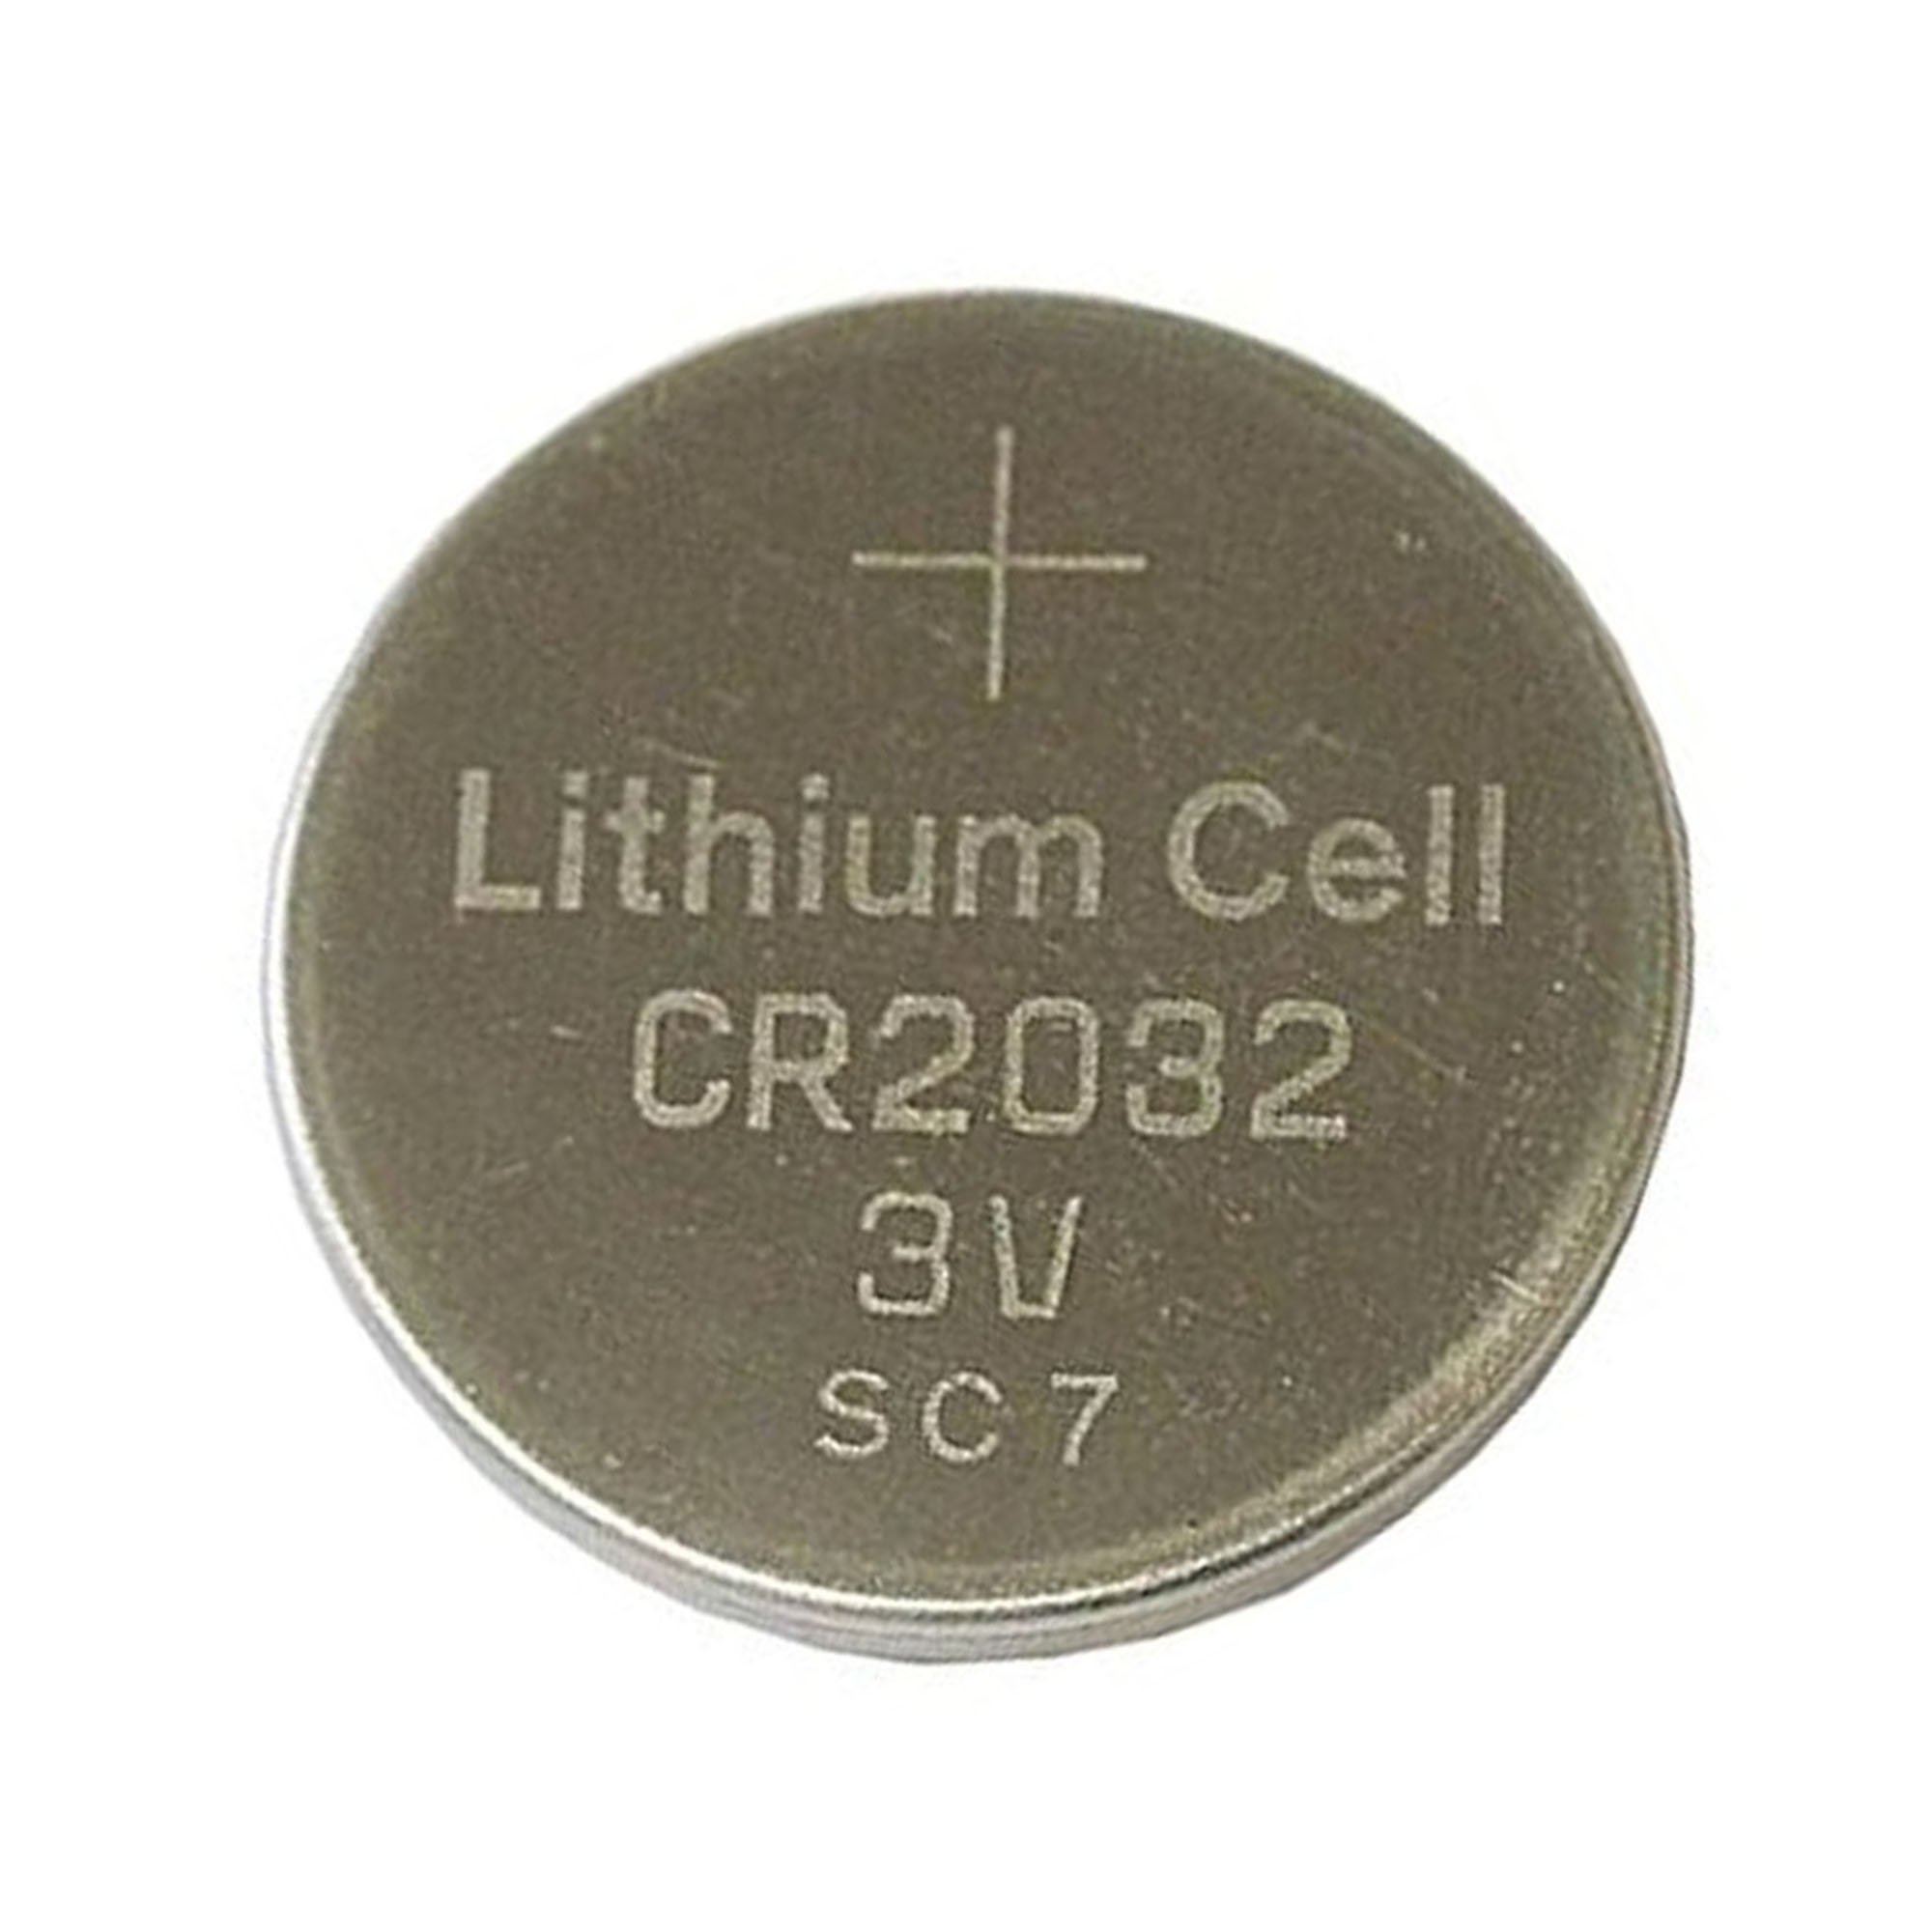 Batterie Cr2032 Cr2032 3 Volt Lithium Coin Cell Battery Walmart Canada